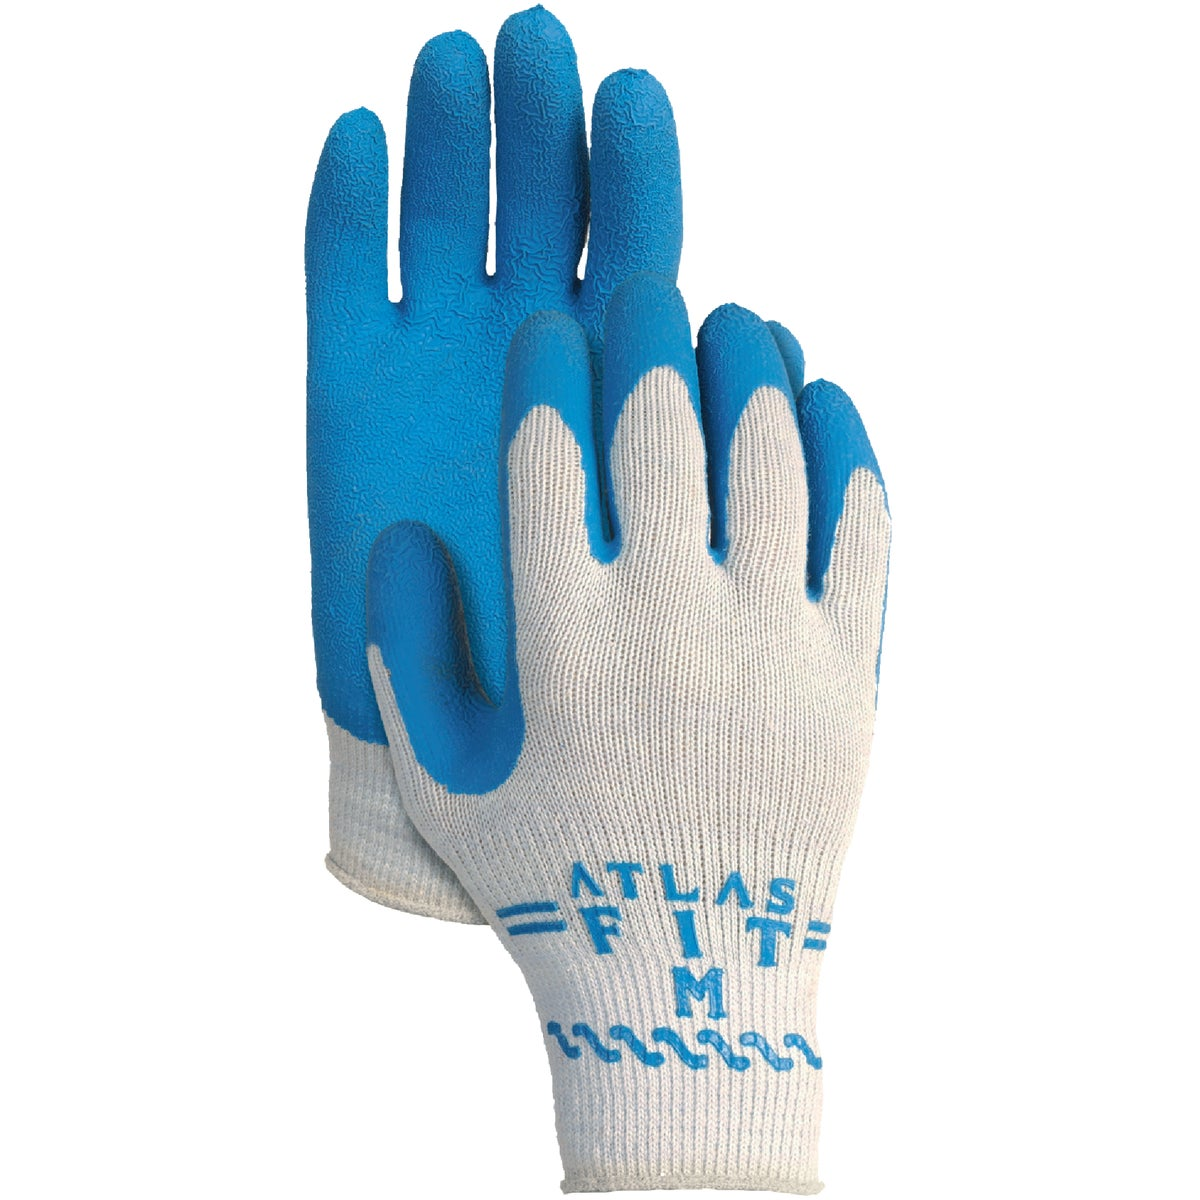 SML PALM DIPPED GLOVE - 300S-07.RT by Showa Best Glove